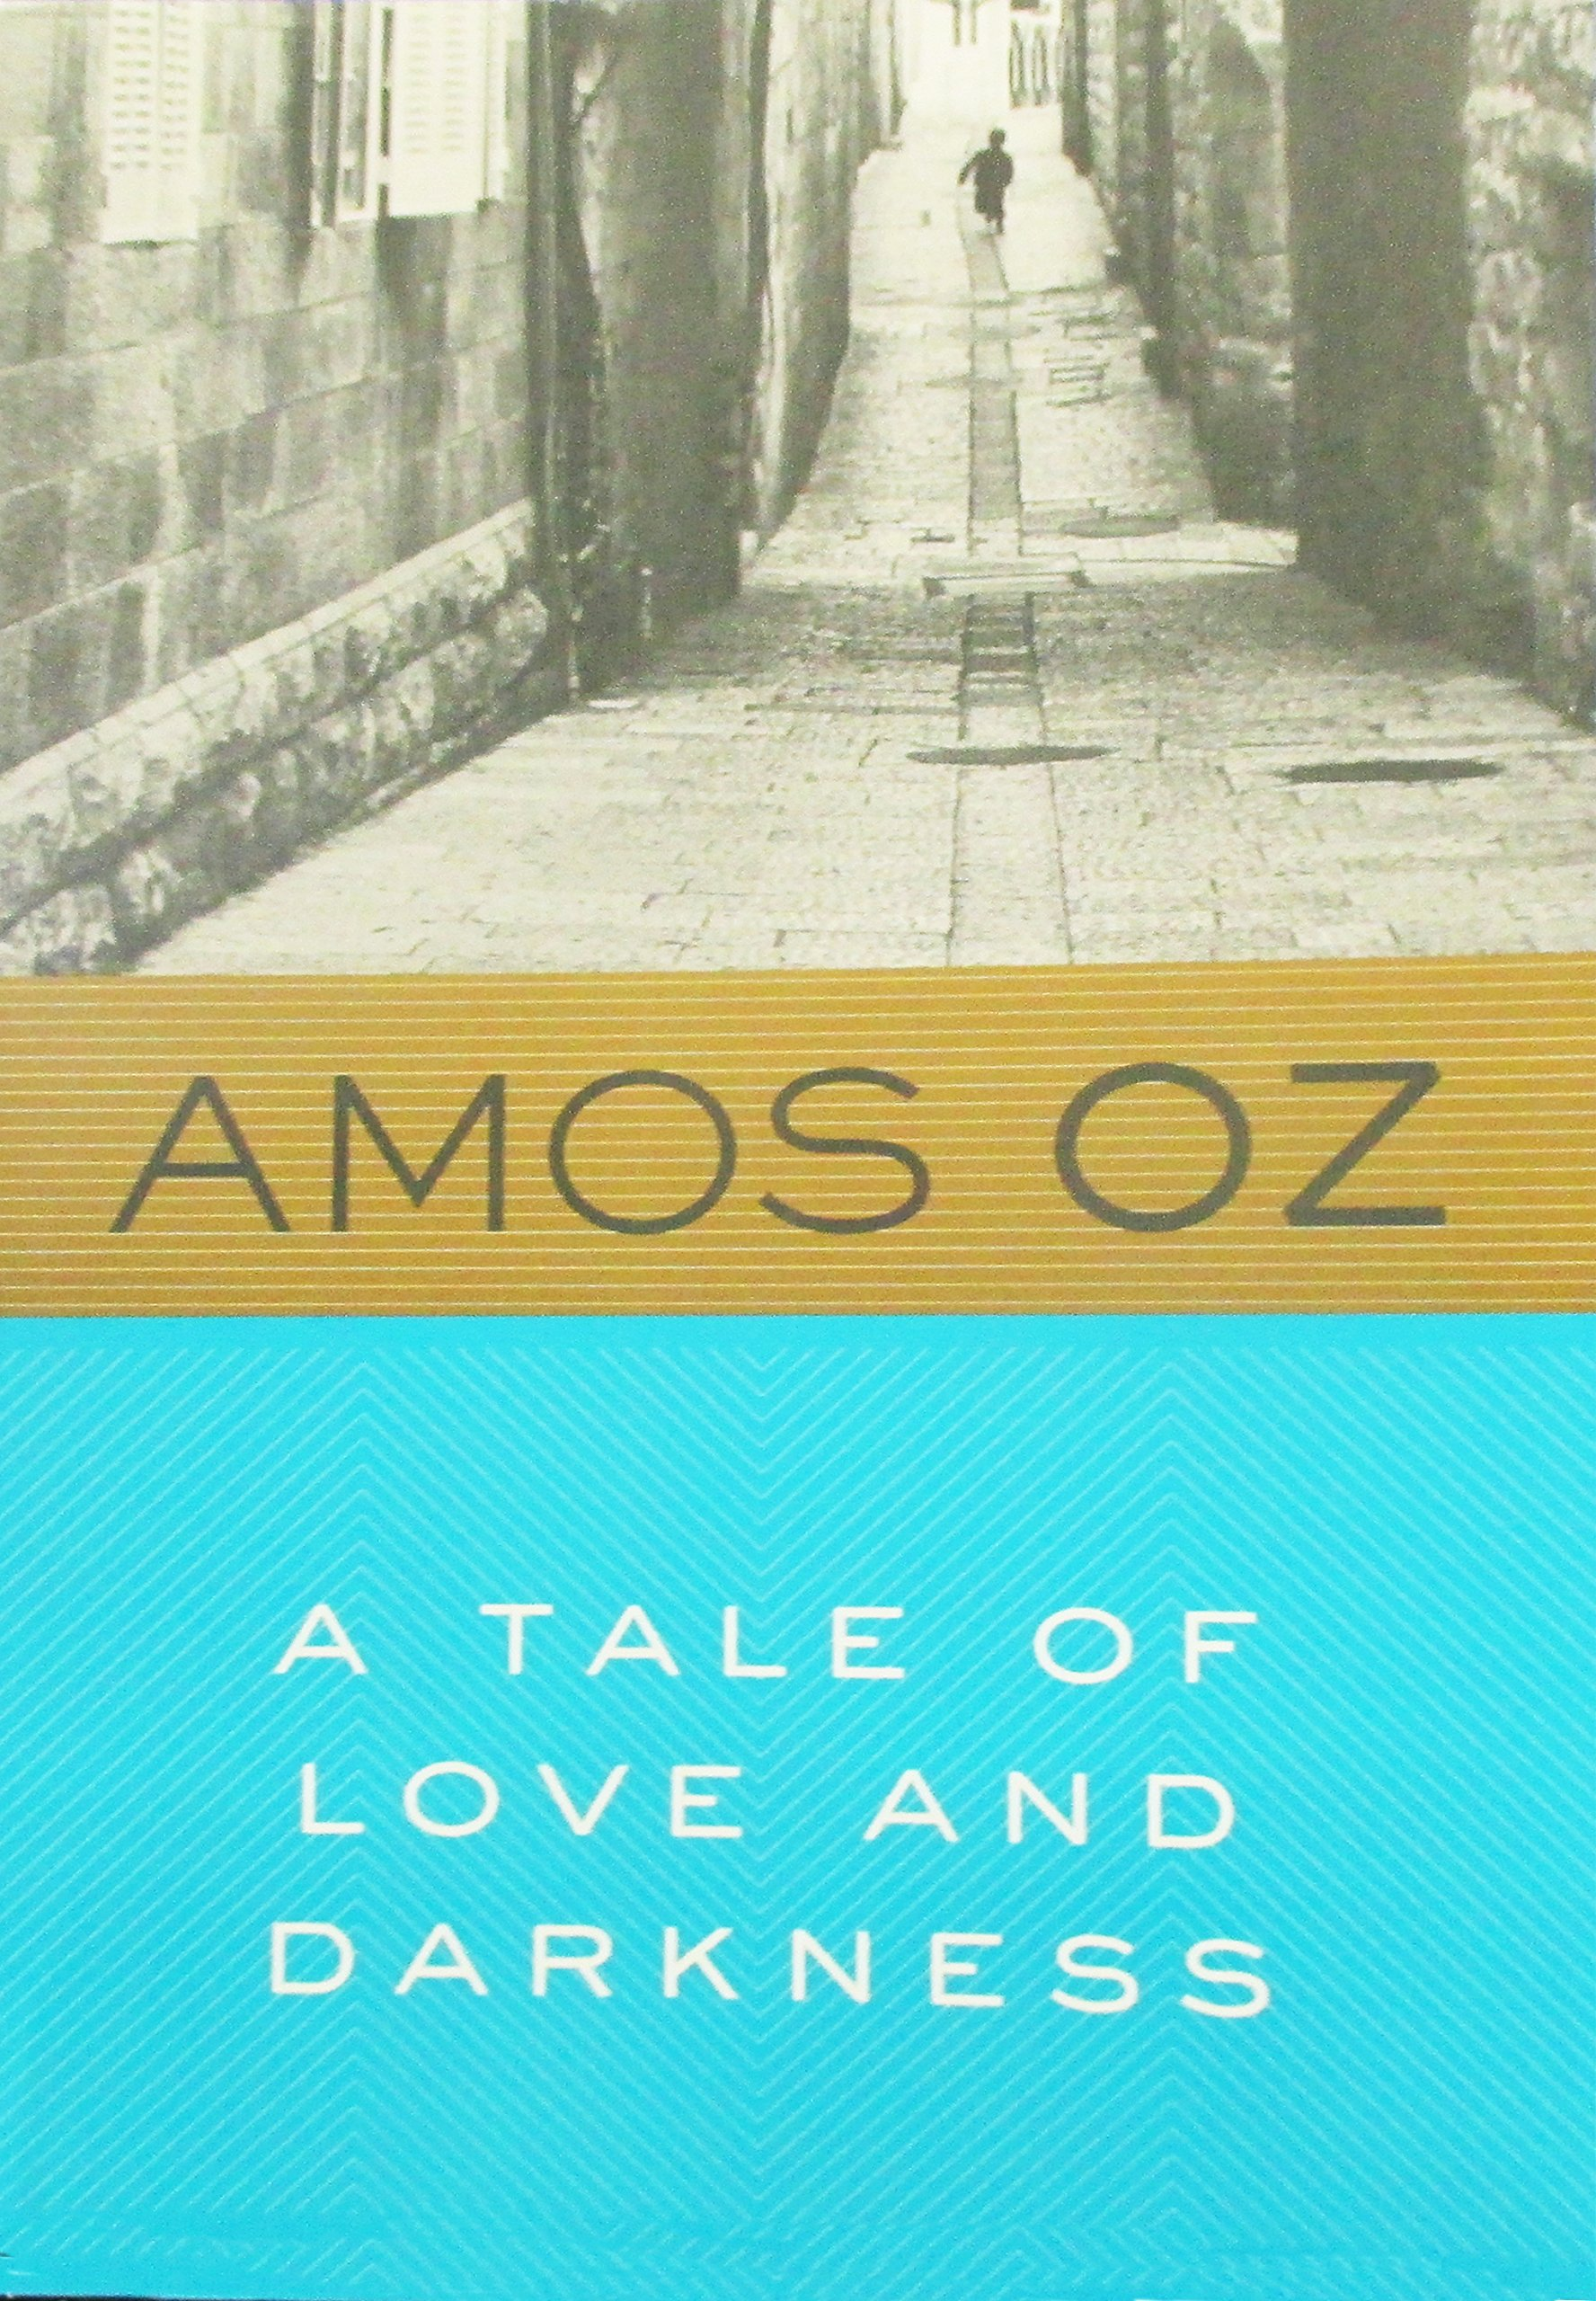 Amazon: A Tale Of Love And Darkness (9780156032520): Amos Oz, Nicholas  De Lange: Books